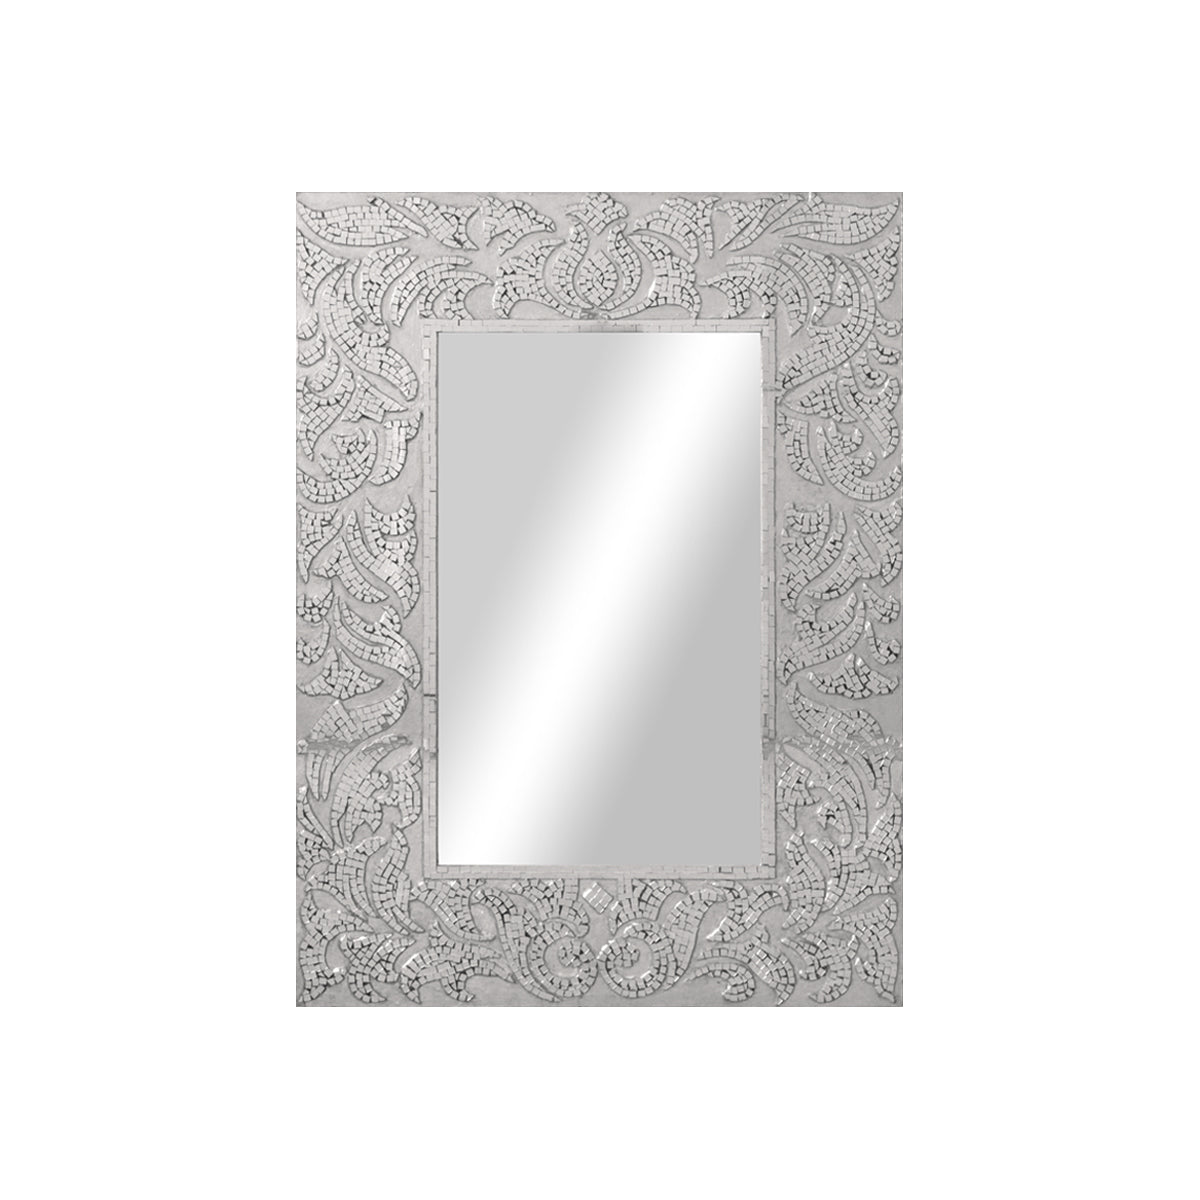 Eden Damask Mirror - Vinoti Living